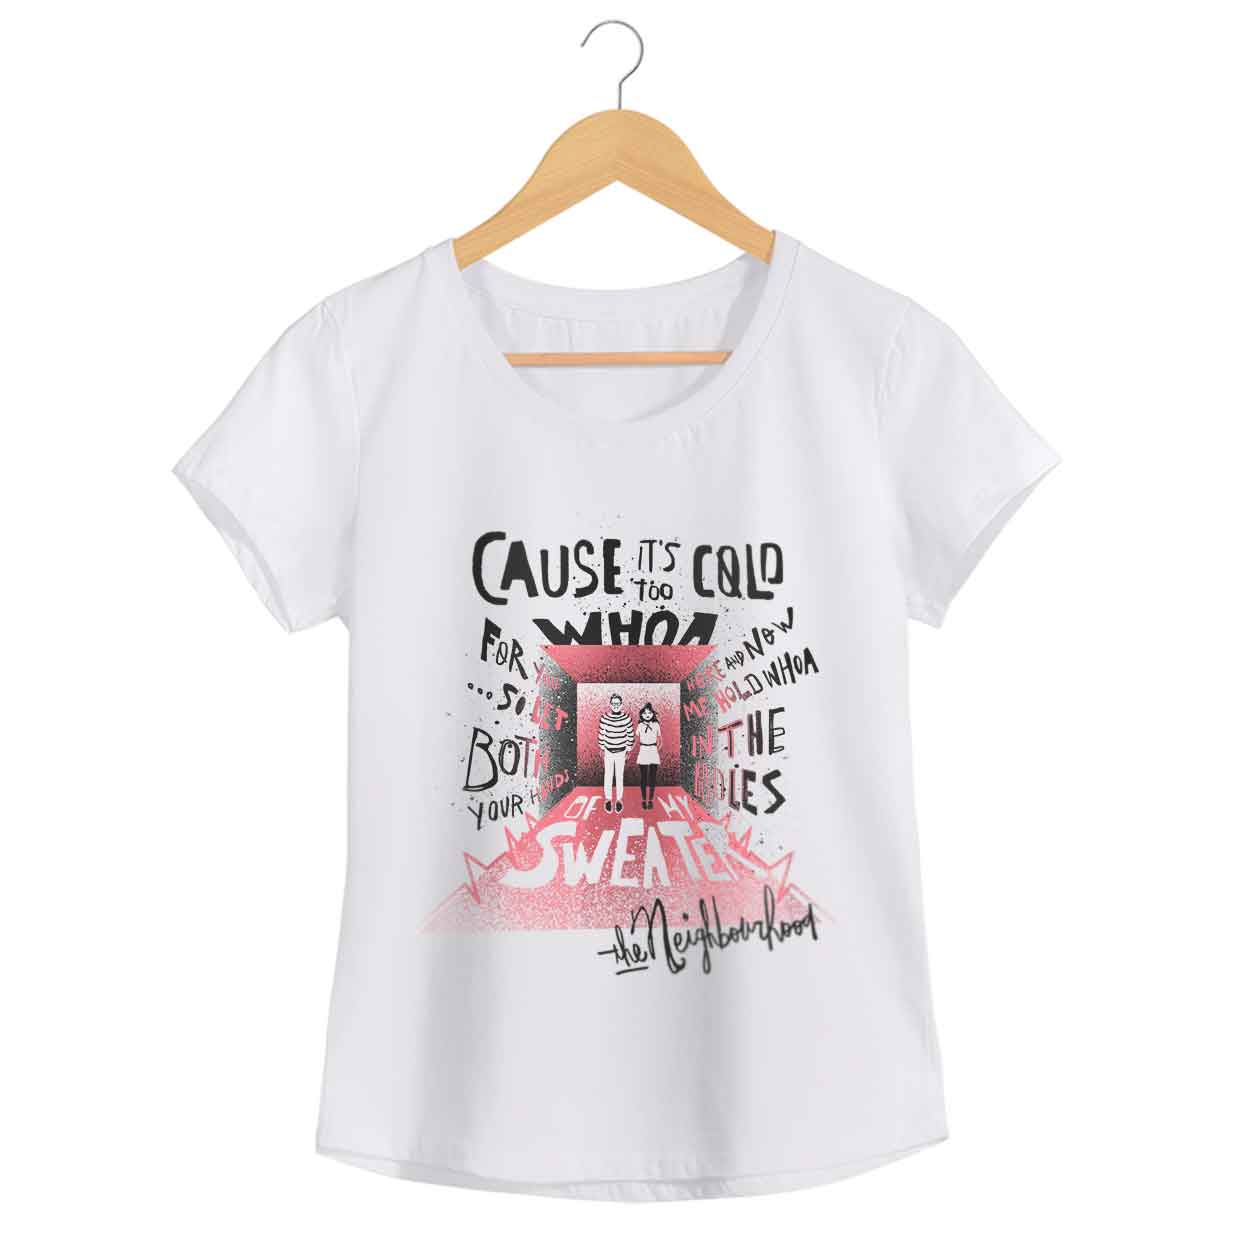 Camiseta Sweater Weather - The Neighbourhood - Feminino